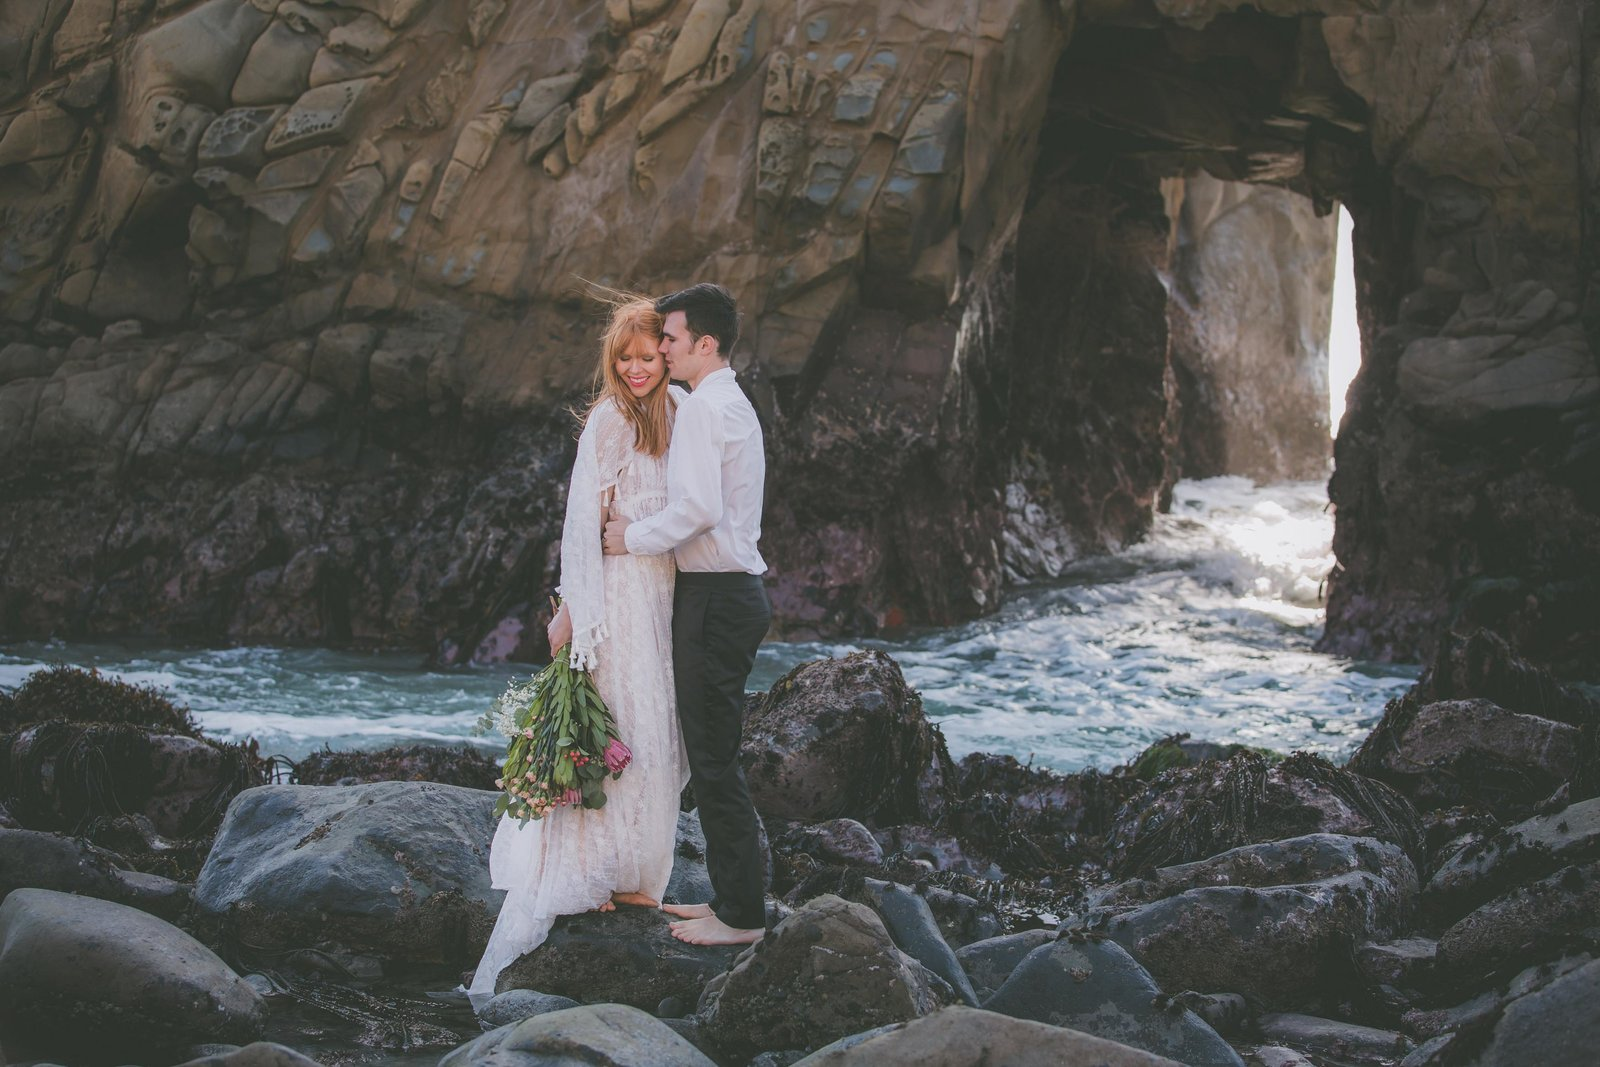 A bride and groom balance on rocks in Pfeiffer beach.